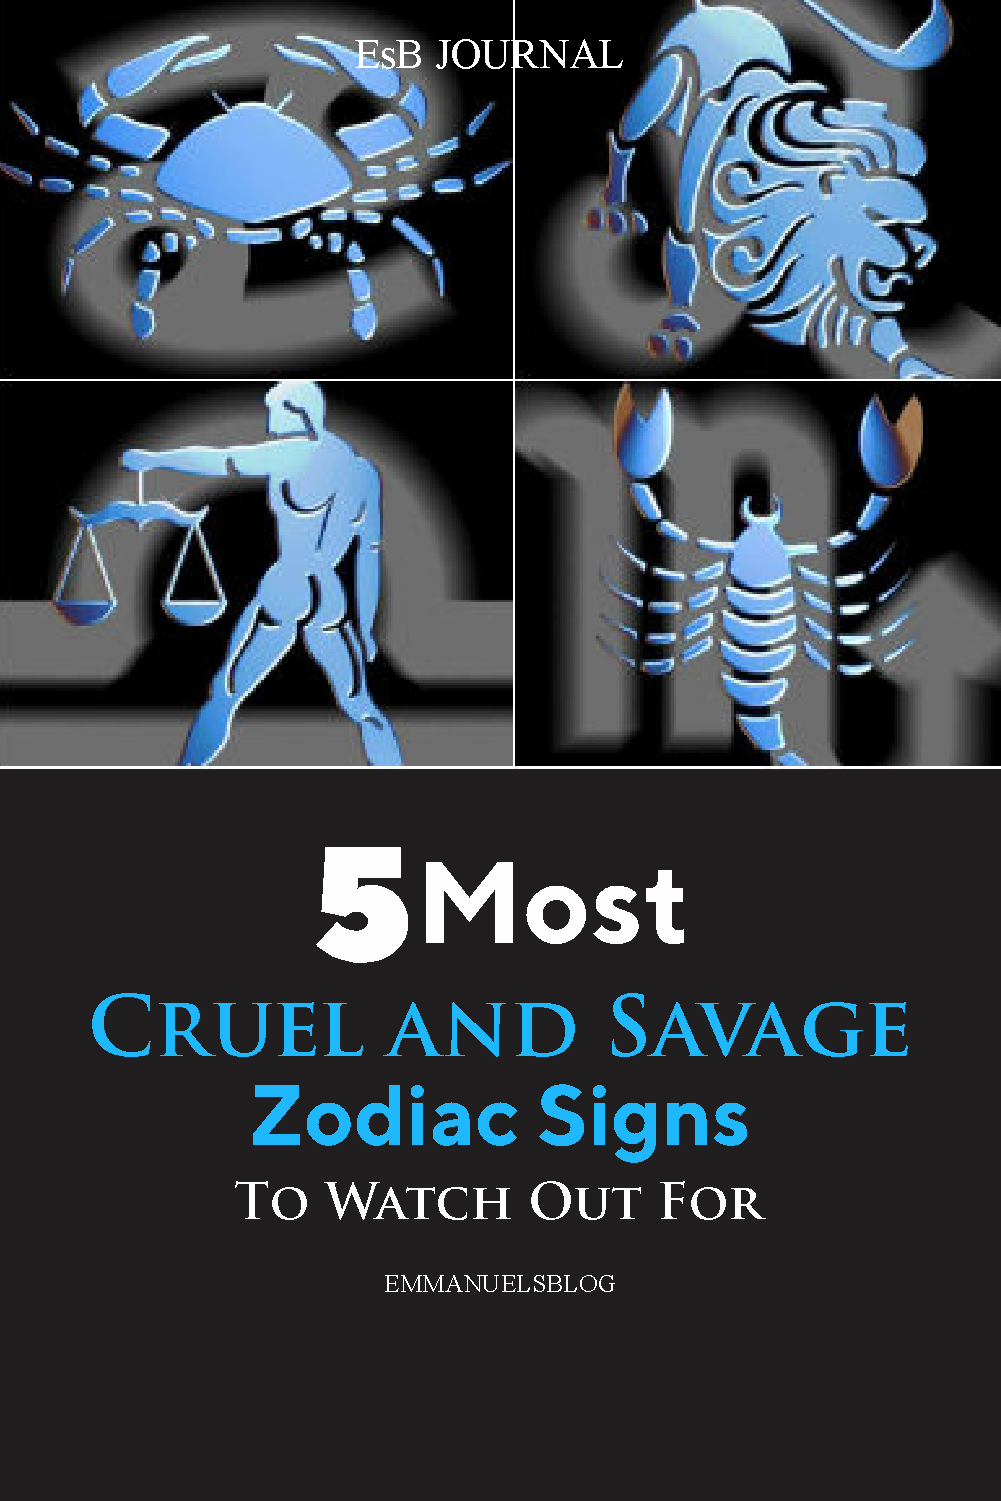 5 of The Most Cruel and Savage Zodiac Signs To Watch Out For